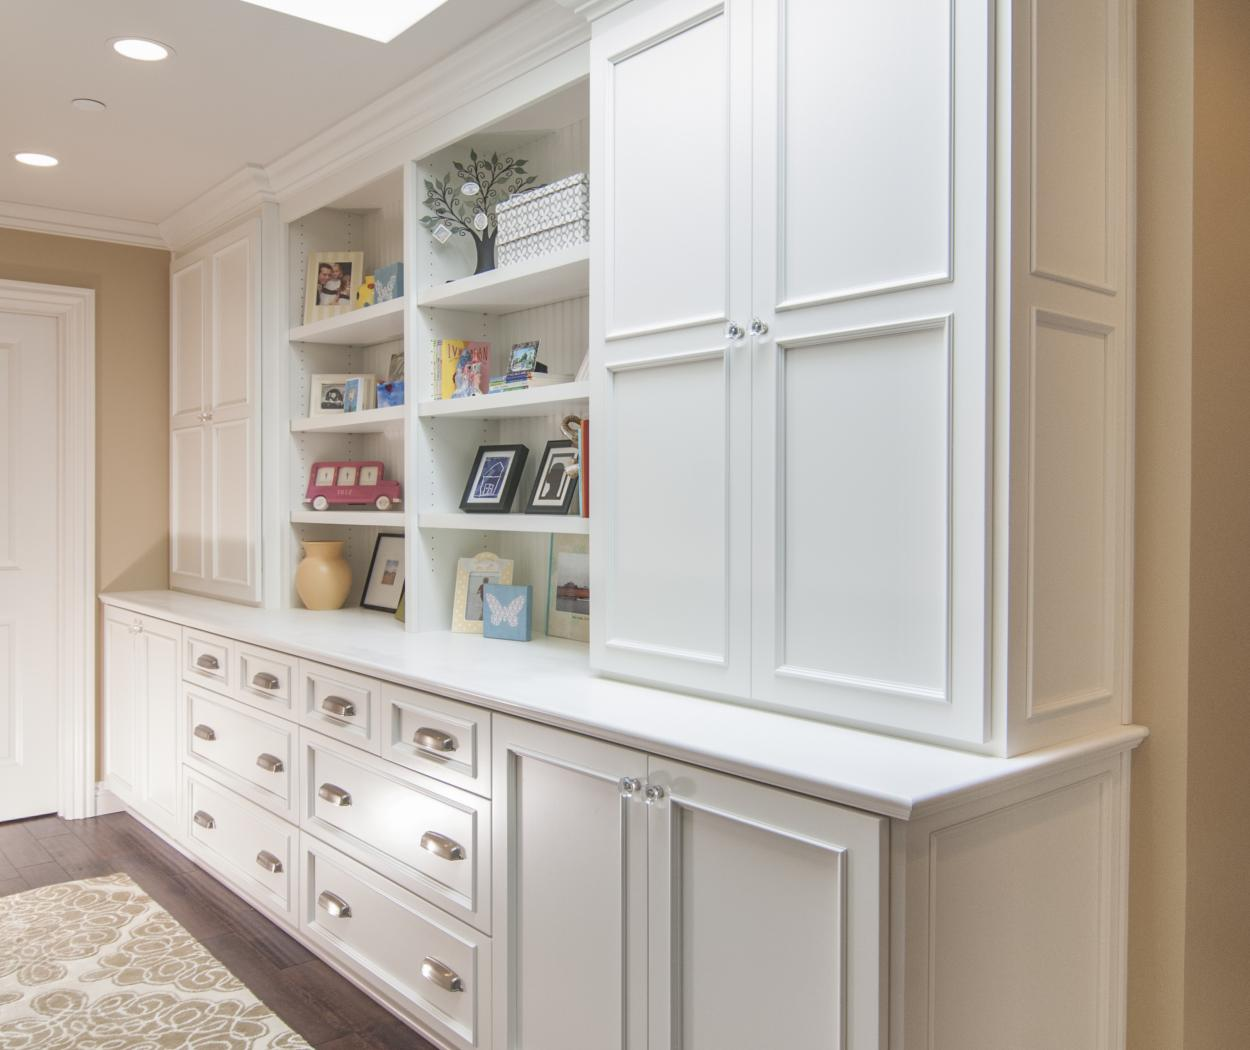 Beautiful White Transitional Built-In with Beardboard Backing, Open Shelves and Diamond Shaped Knobs